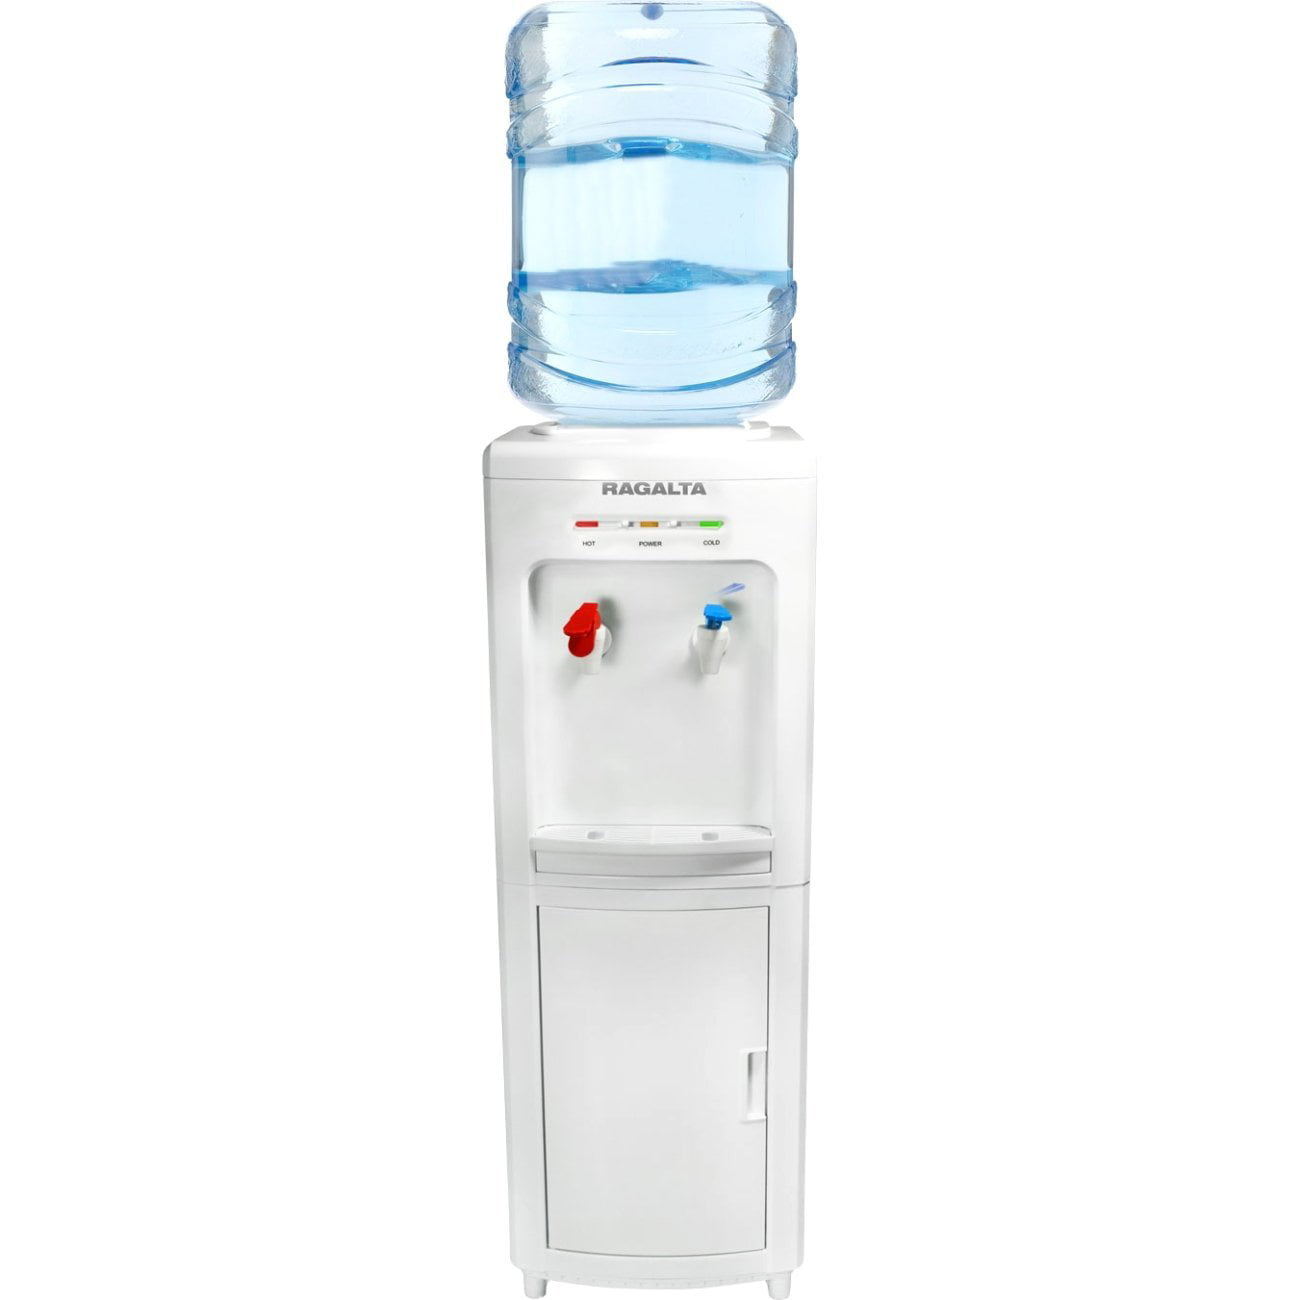 Thermo Electric Hot and Cold Water Cooler - Walmart.com